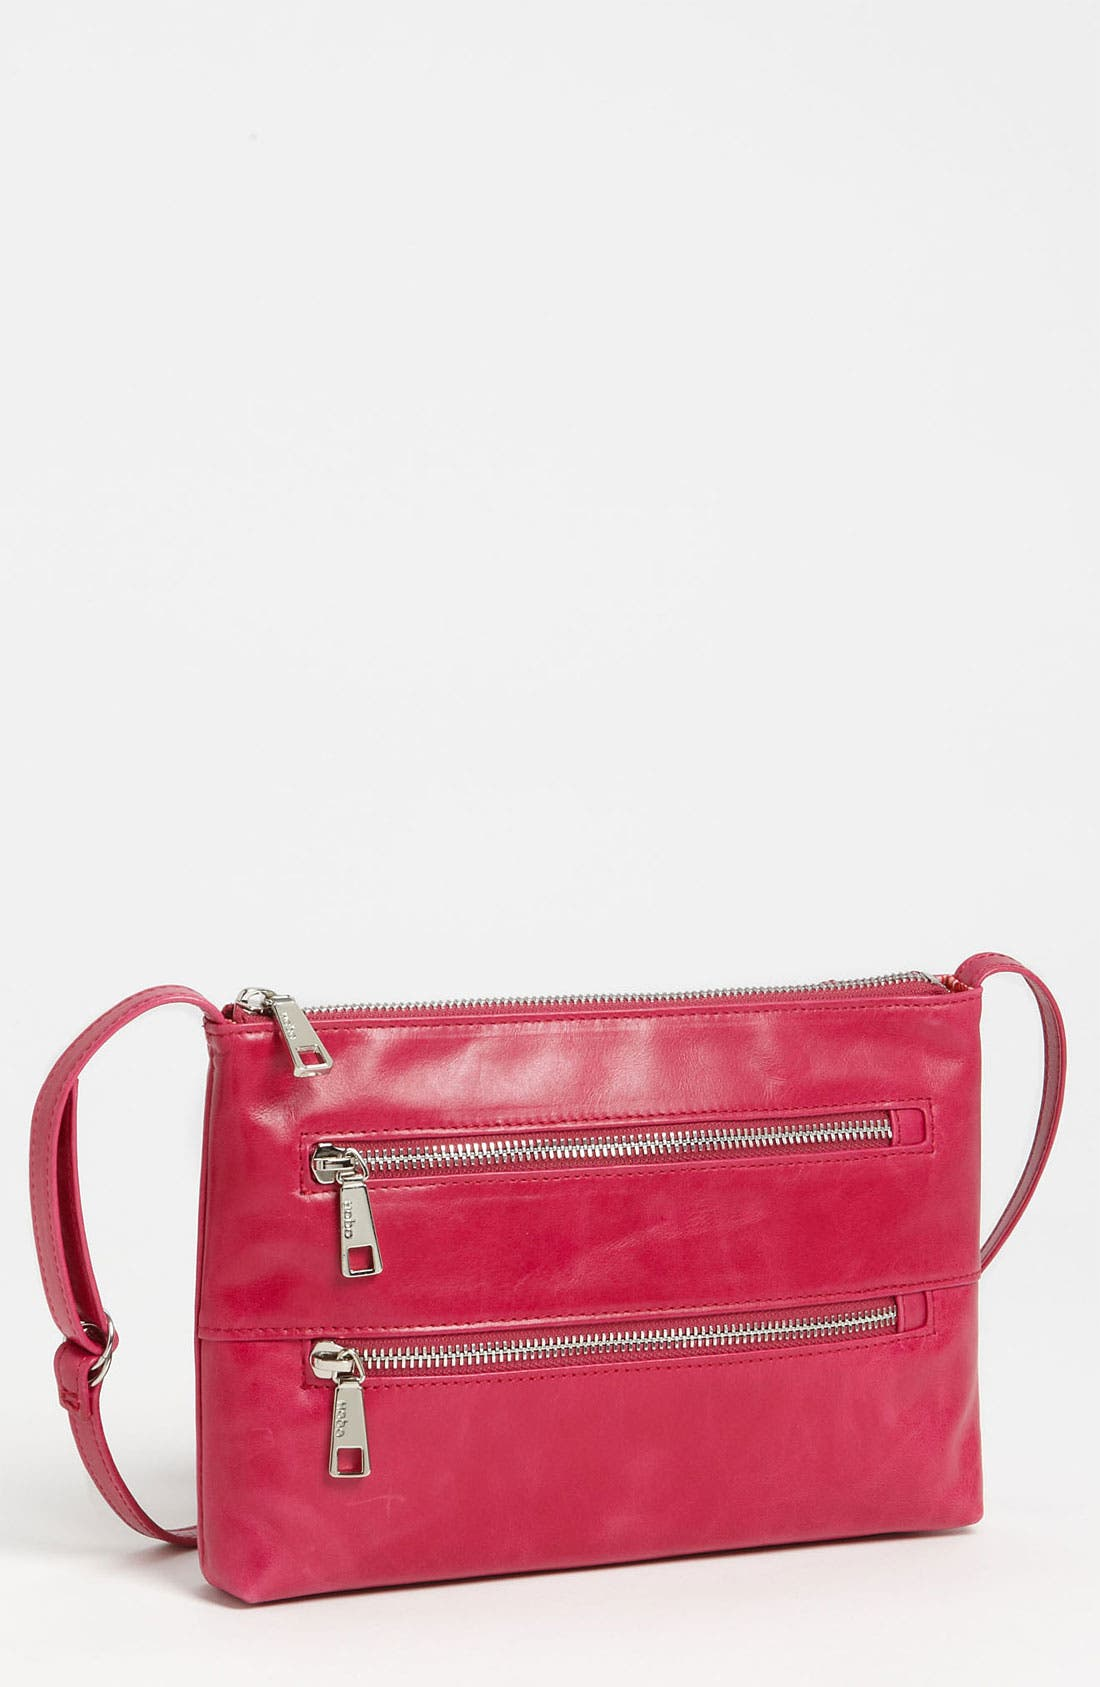 Alternate Image 1 Selected - Hobo 'Mara' Crossbody Bag